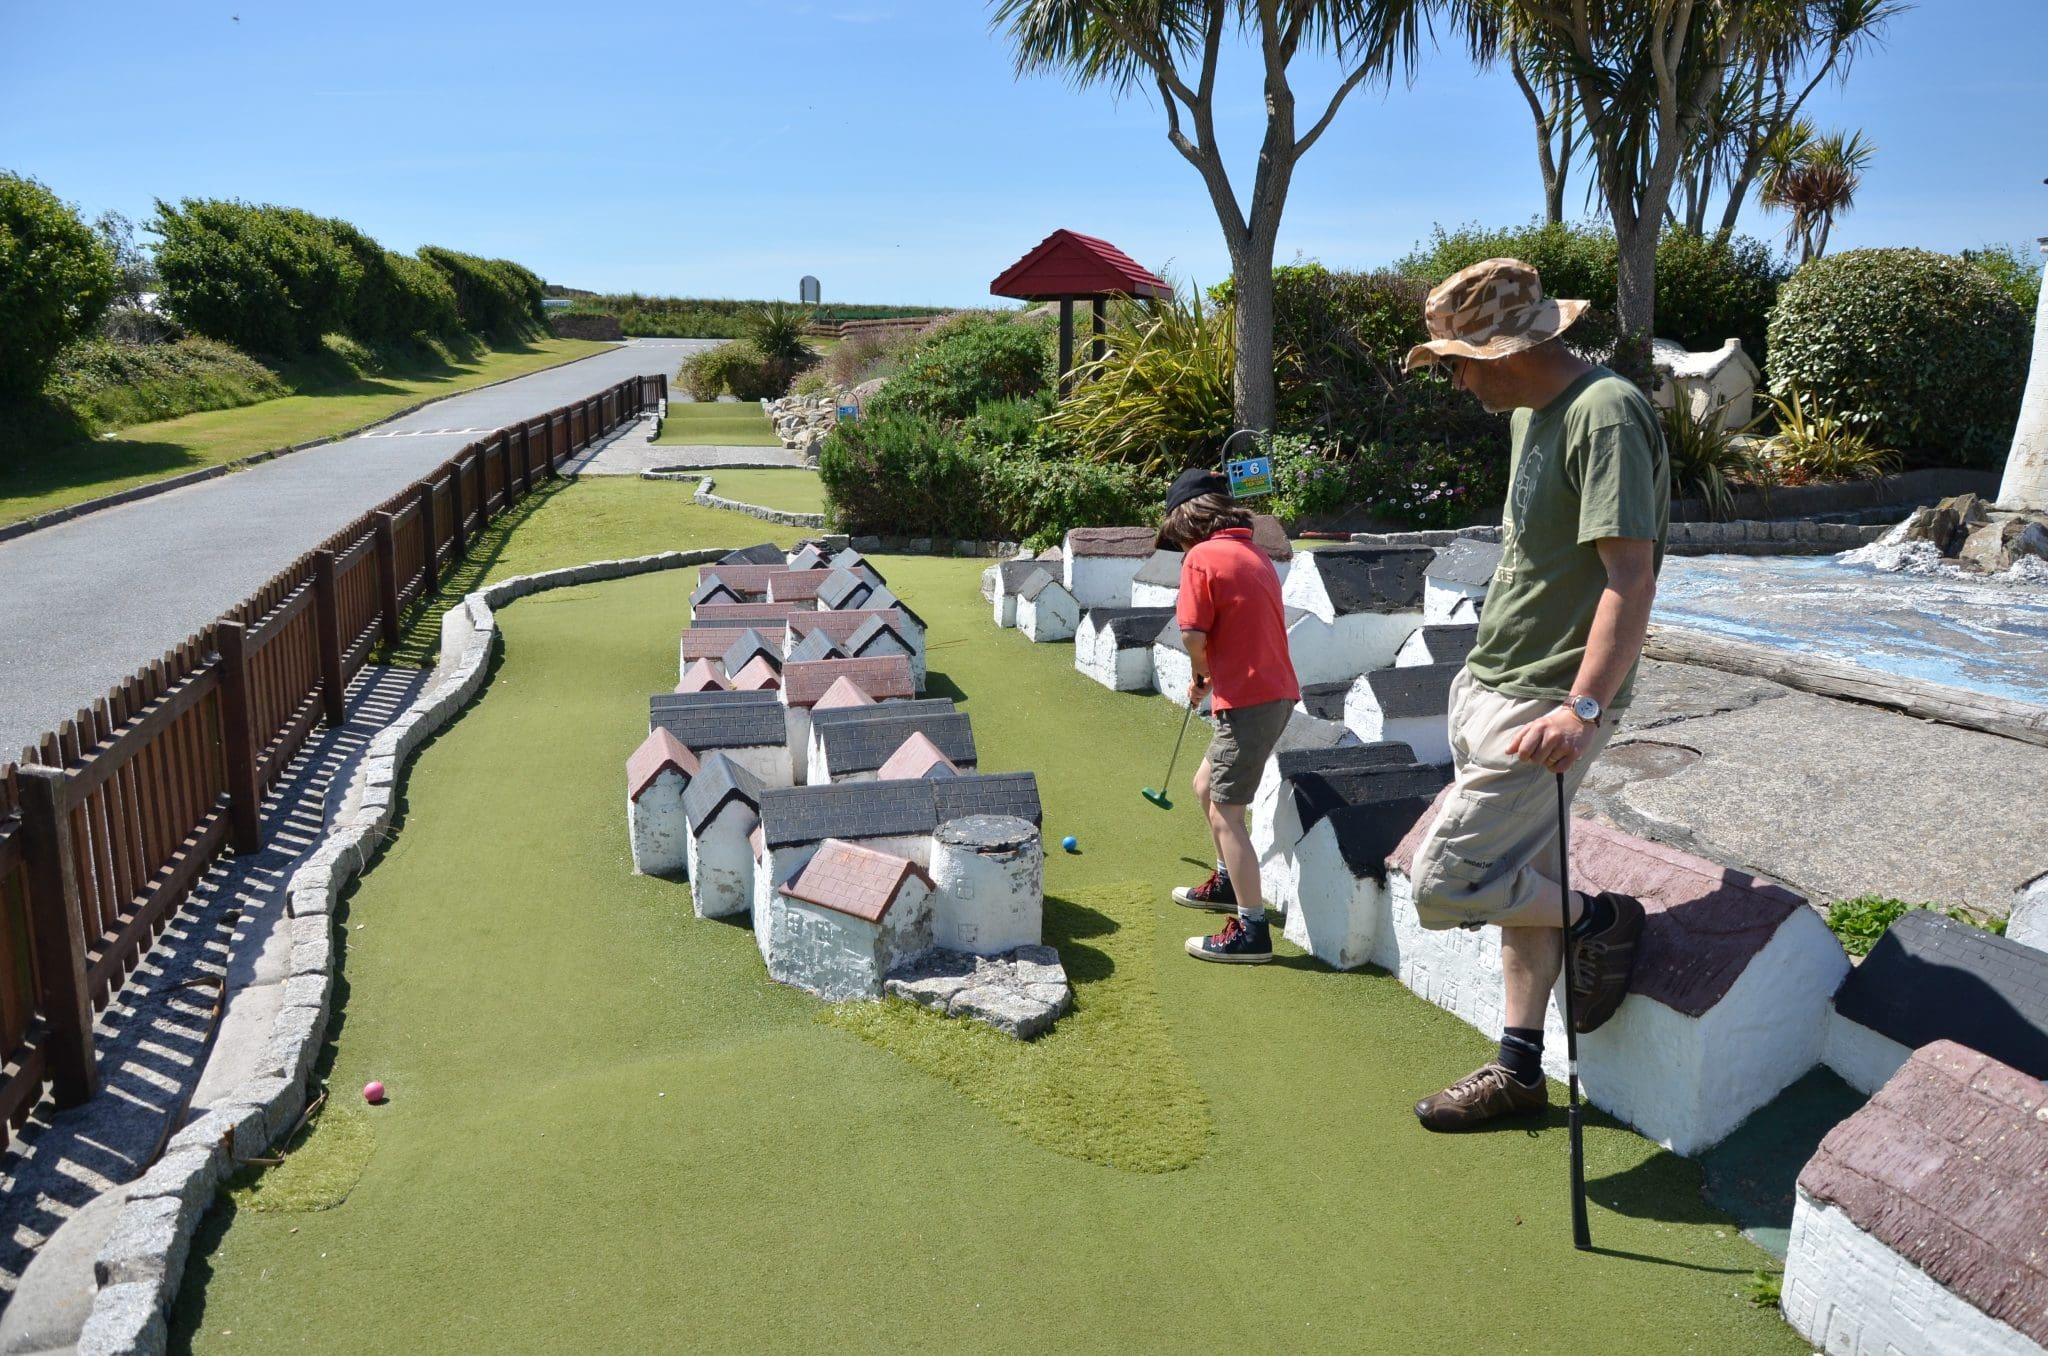 Crazy Golf at Holywell Bay Fun Park